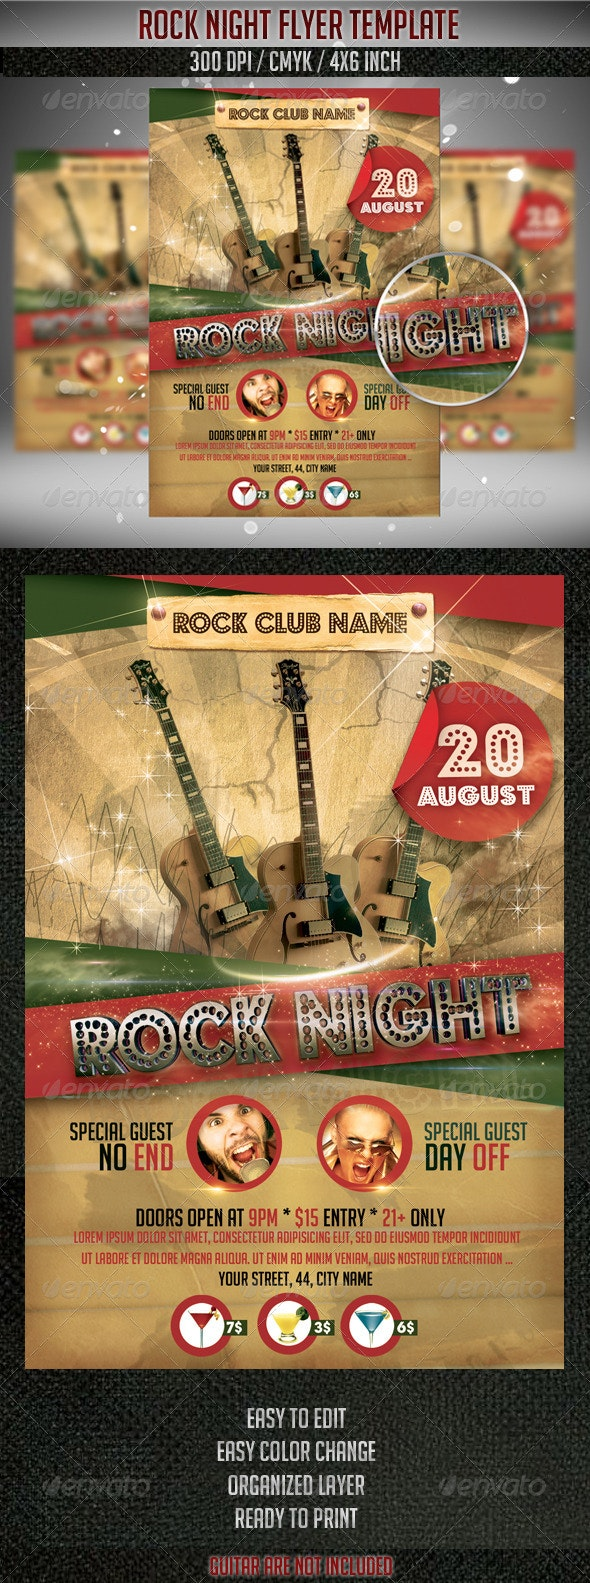 Rock Night Flyer Template - Clubs & Parties Events